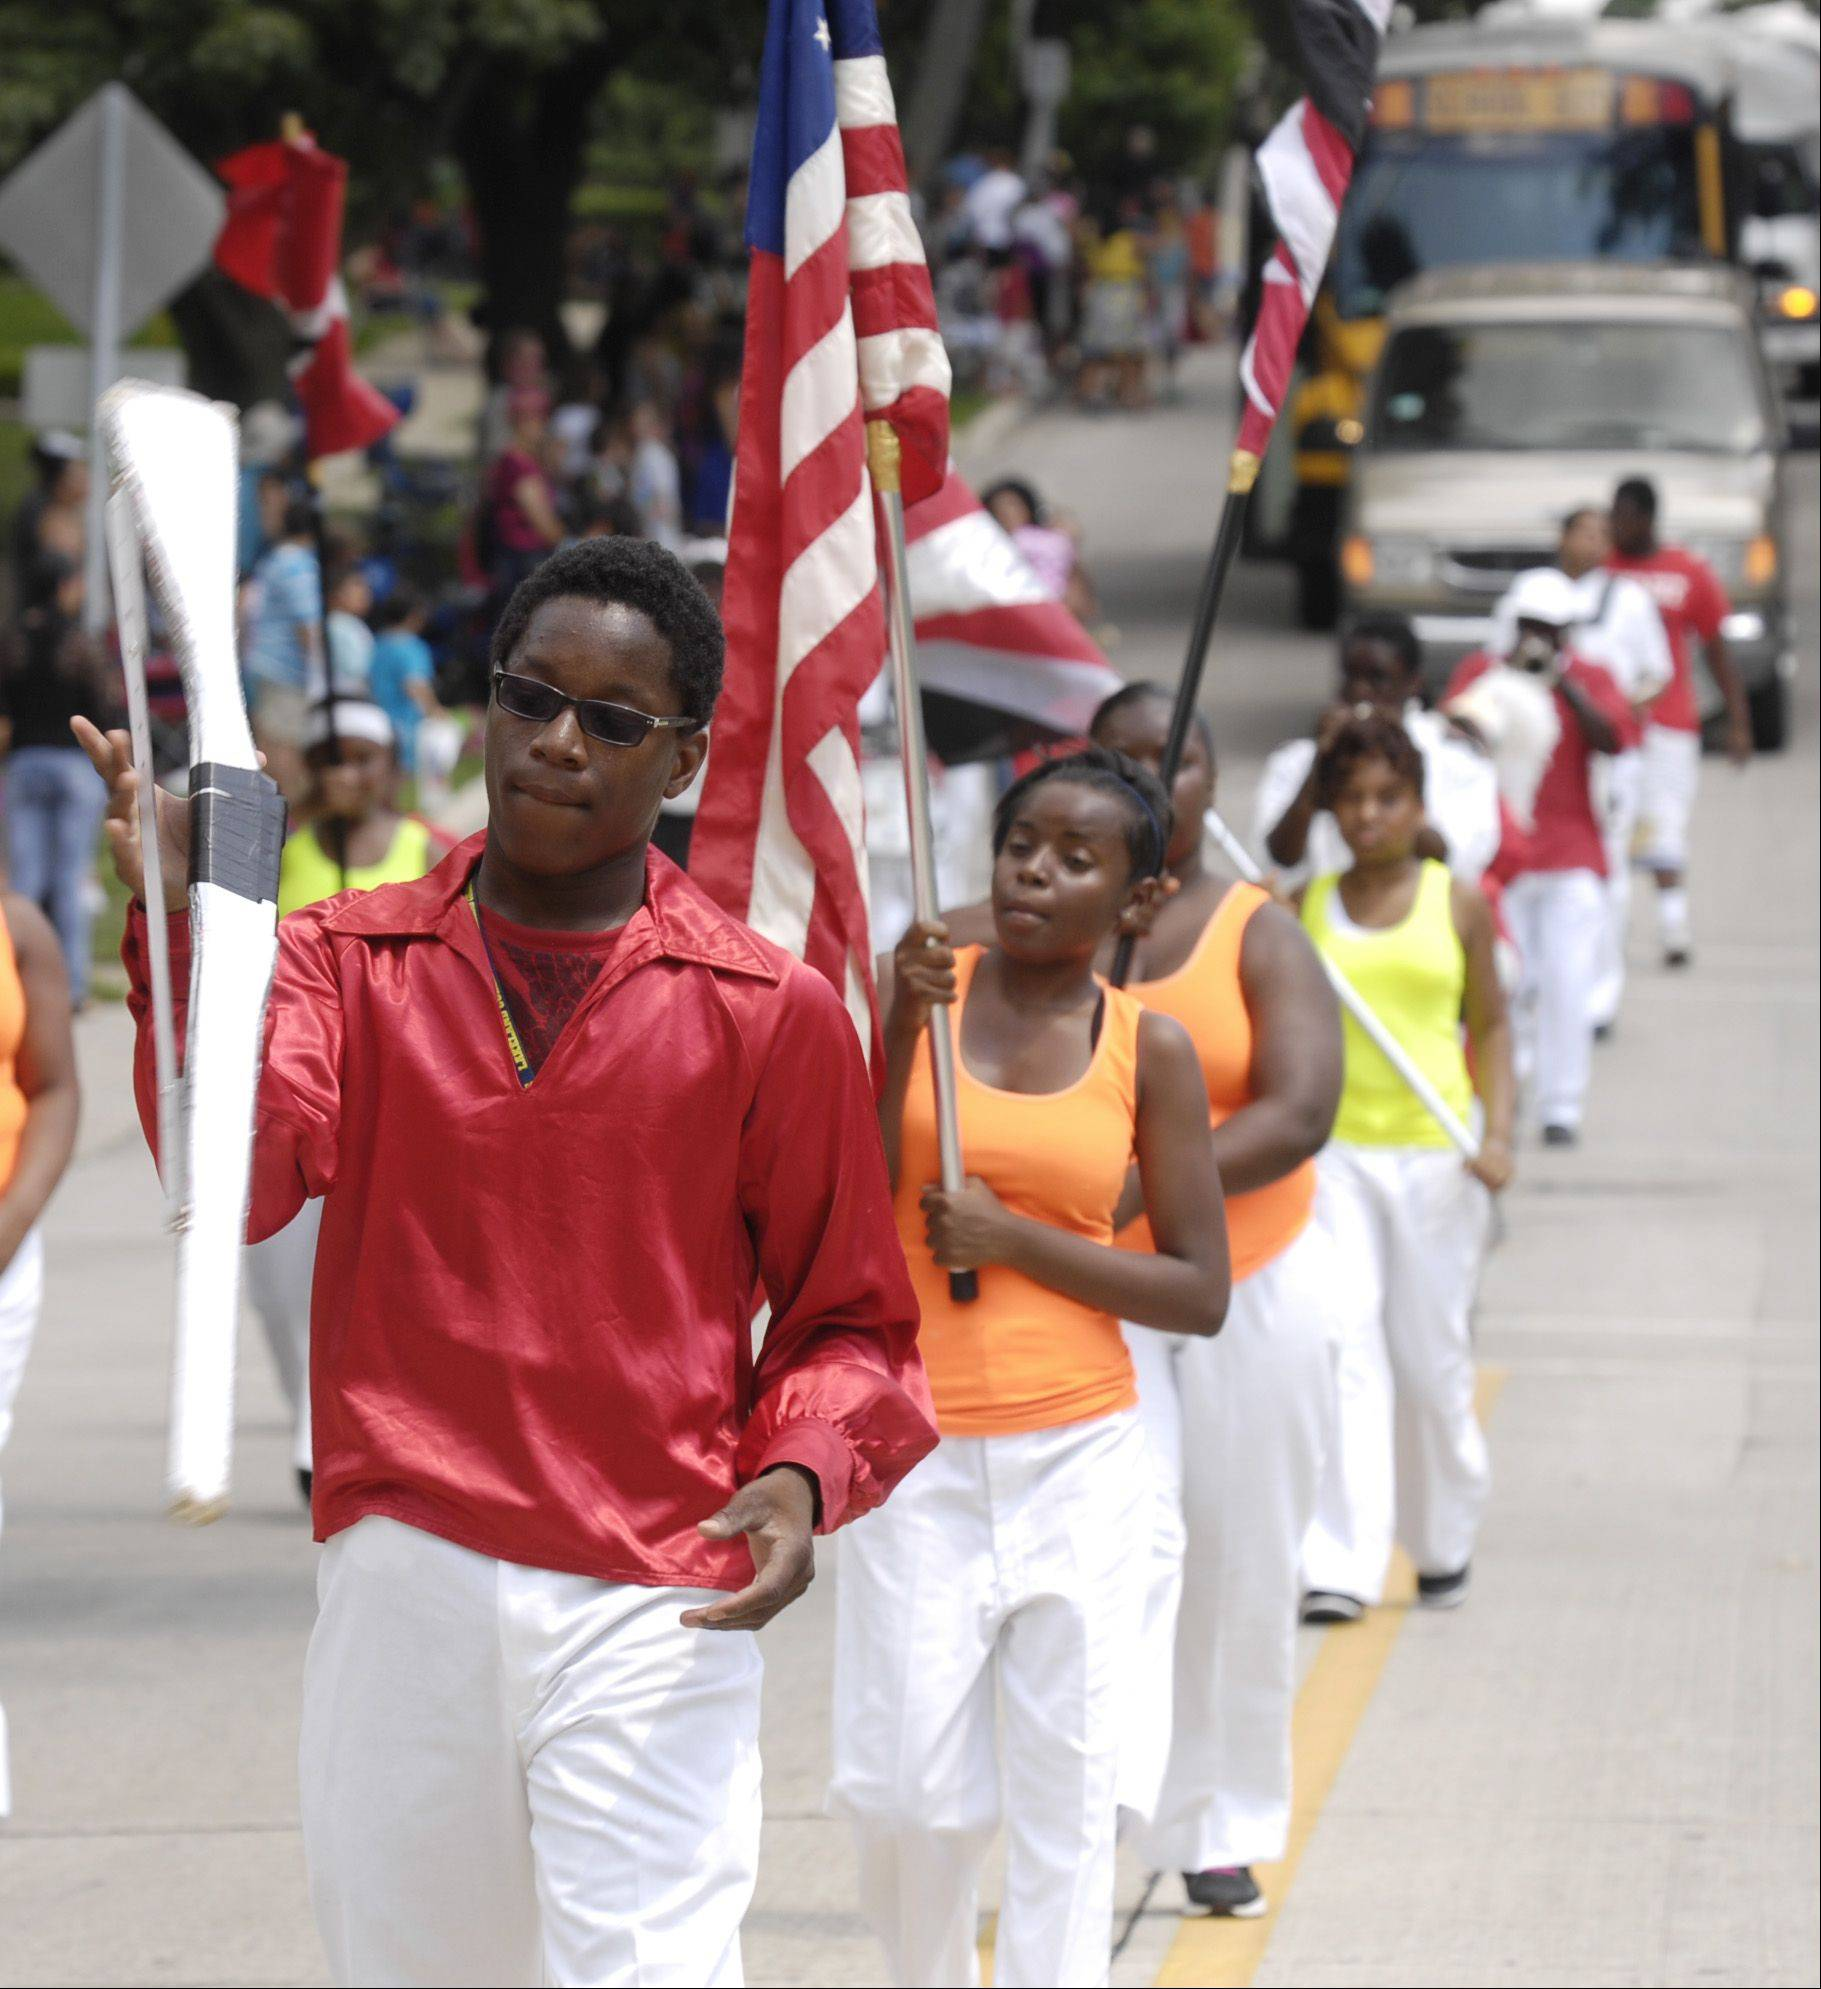 The South West Rifle and Drill Team marches in the West Chicago Railroad days parade, Sunday.